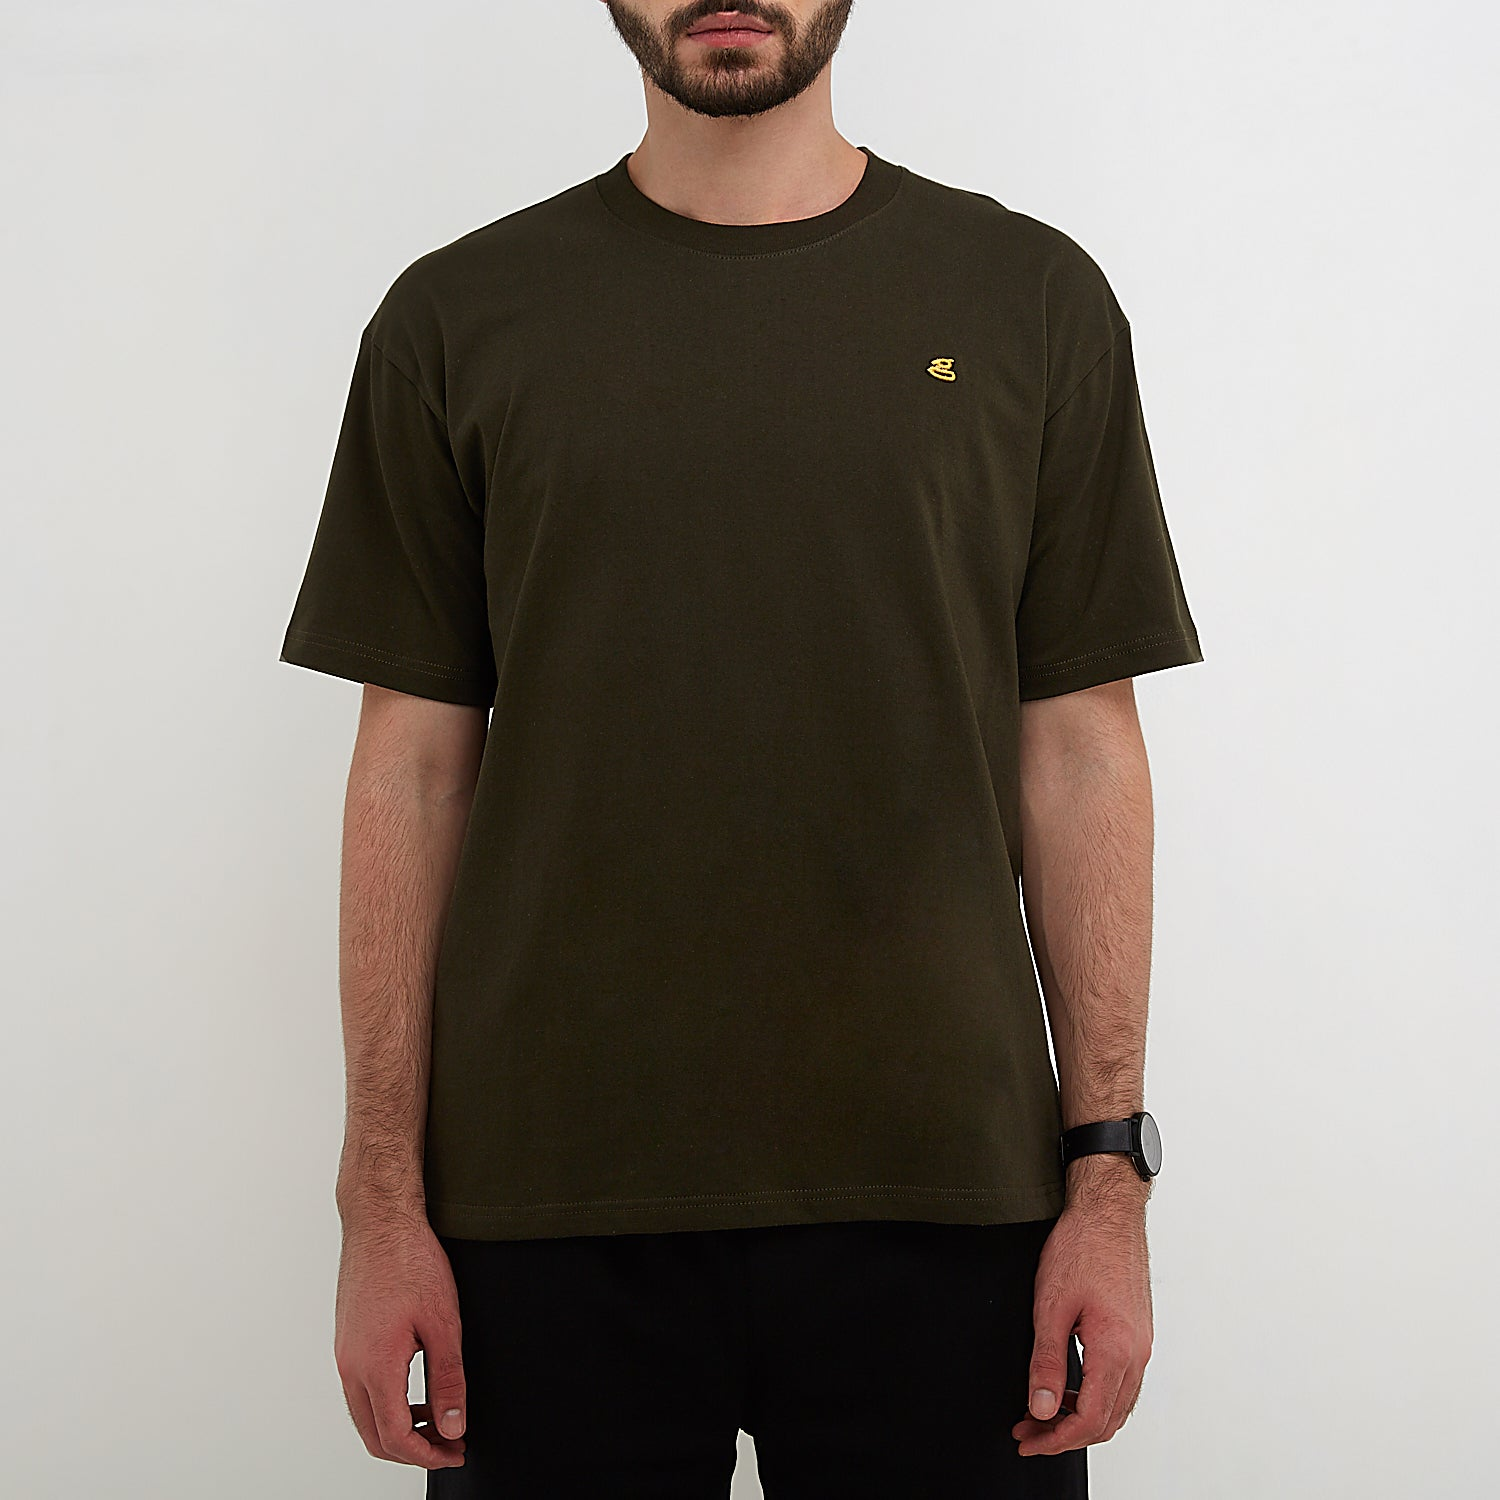 Austin Emroidered Army T-Shirt